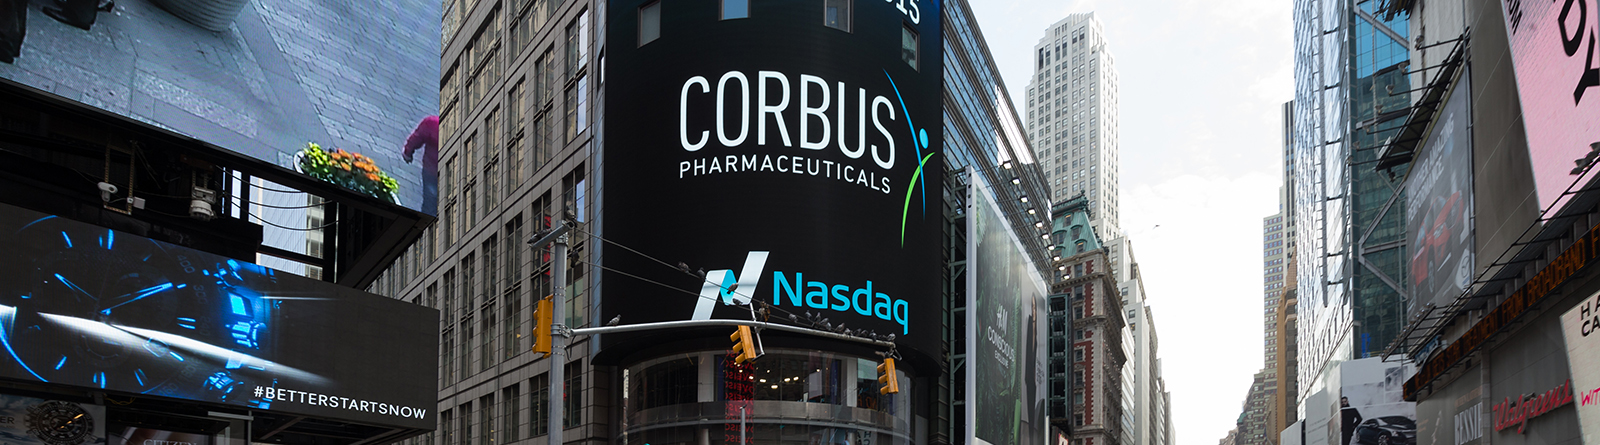 Corbus Pharmaceuticals to Present at Two Upcoming Investor Conferences in May Banner